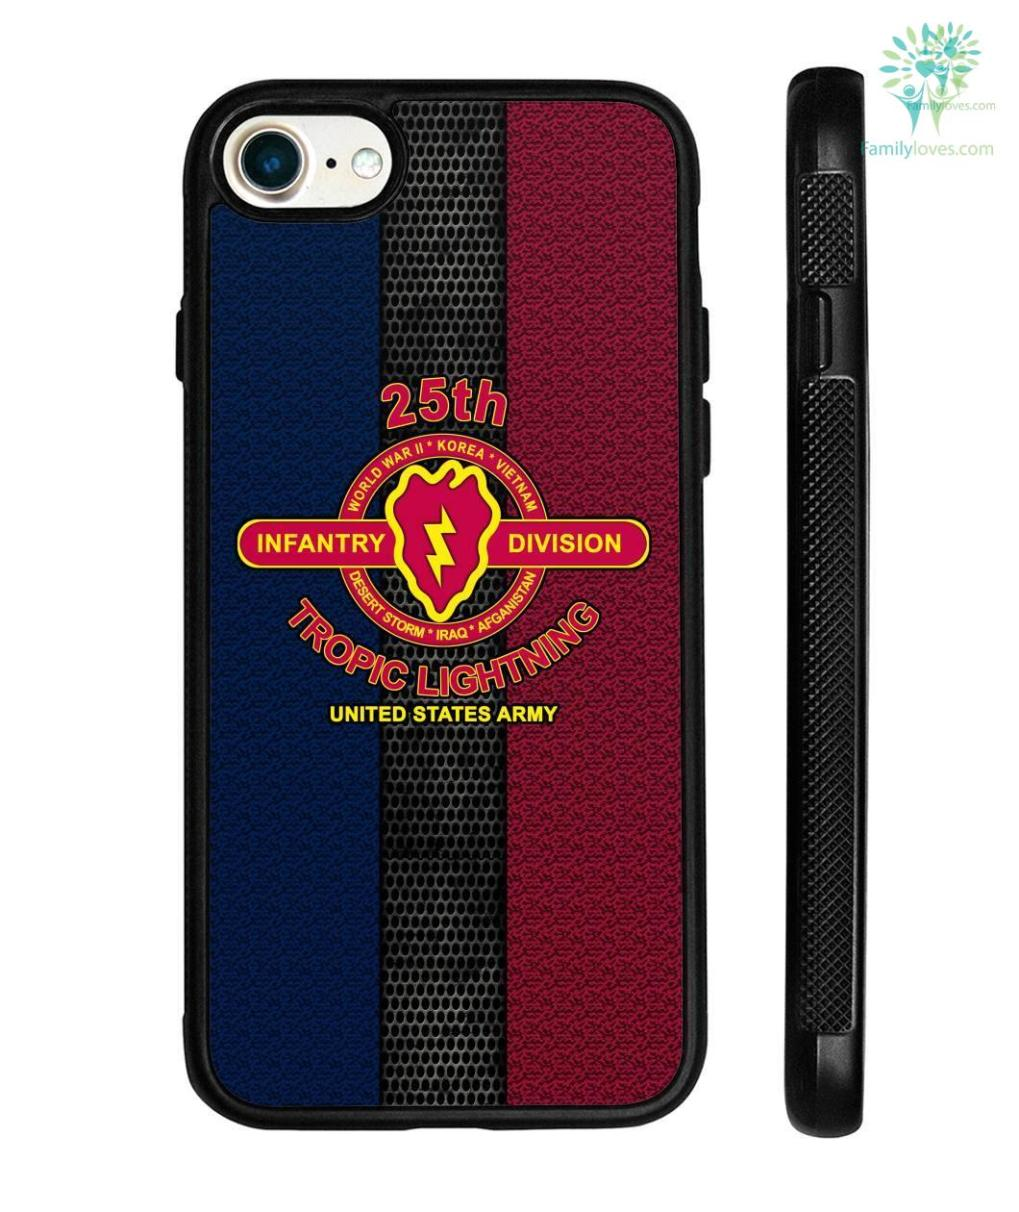 25th-infantry-division_b2e99104-3657-a3b3-1573-90c69f9a1065 25th Infantry Division tropic lightning United States Army? iPhone cases  %tag